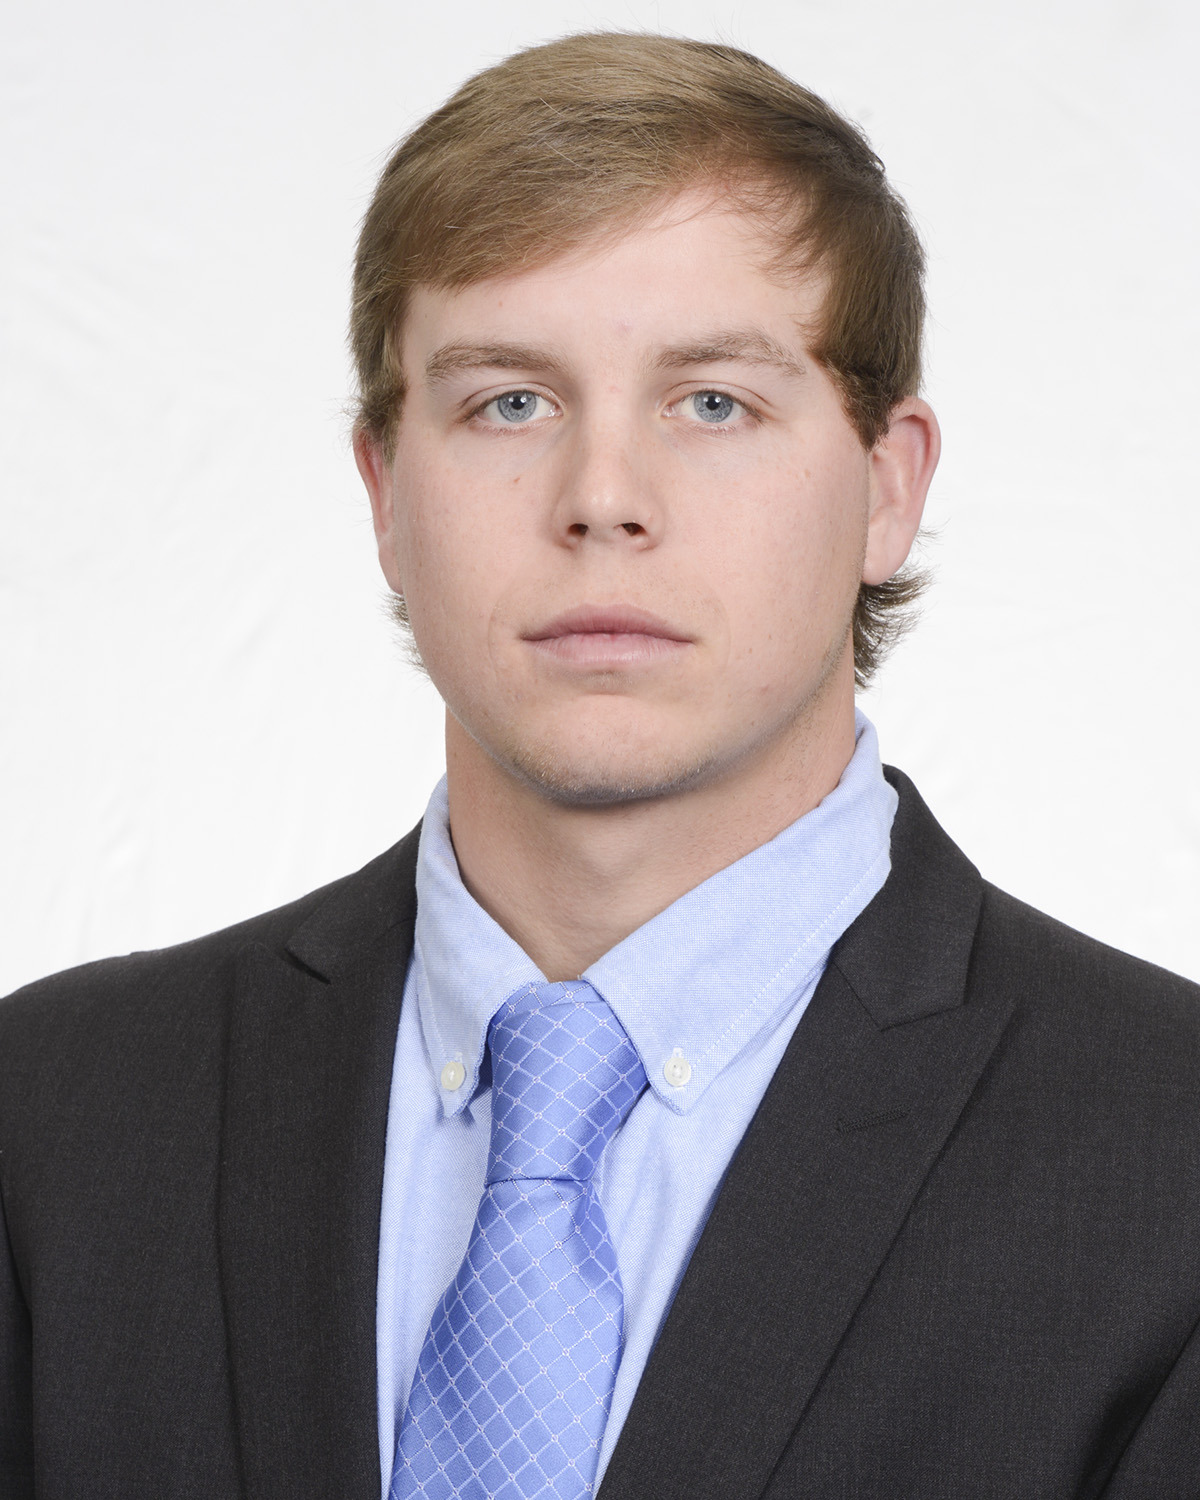 <b>Jordan Washam was named Hitter of the Week by both C-USA and the LSWA</b>